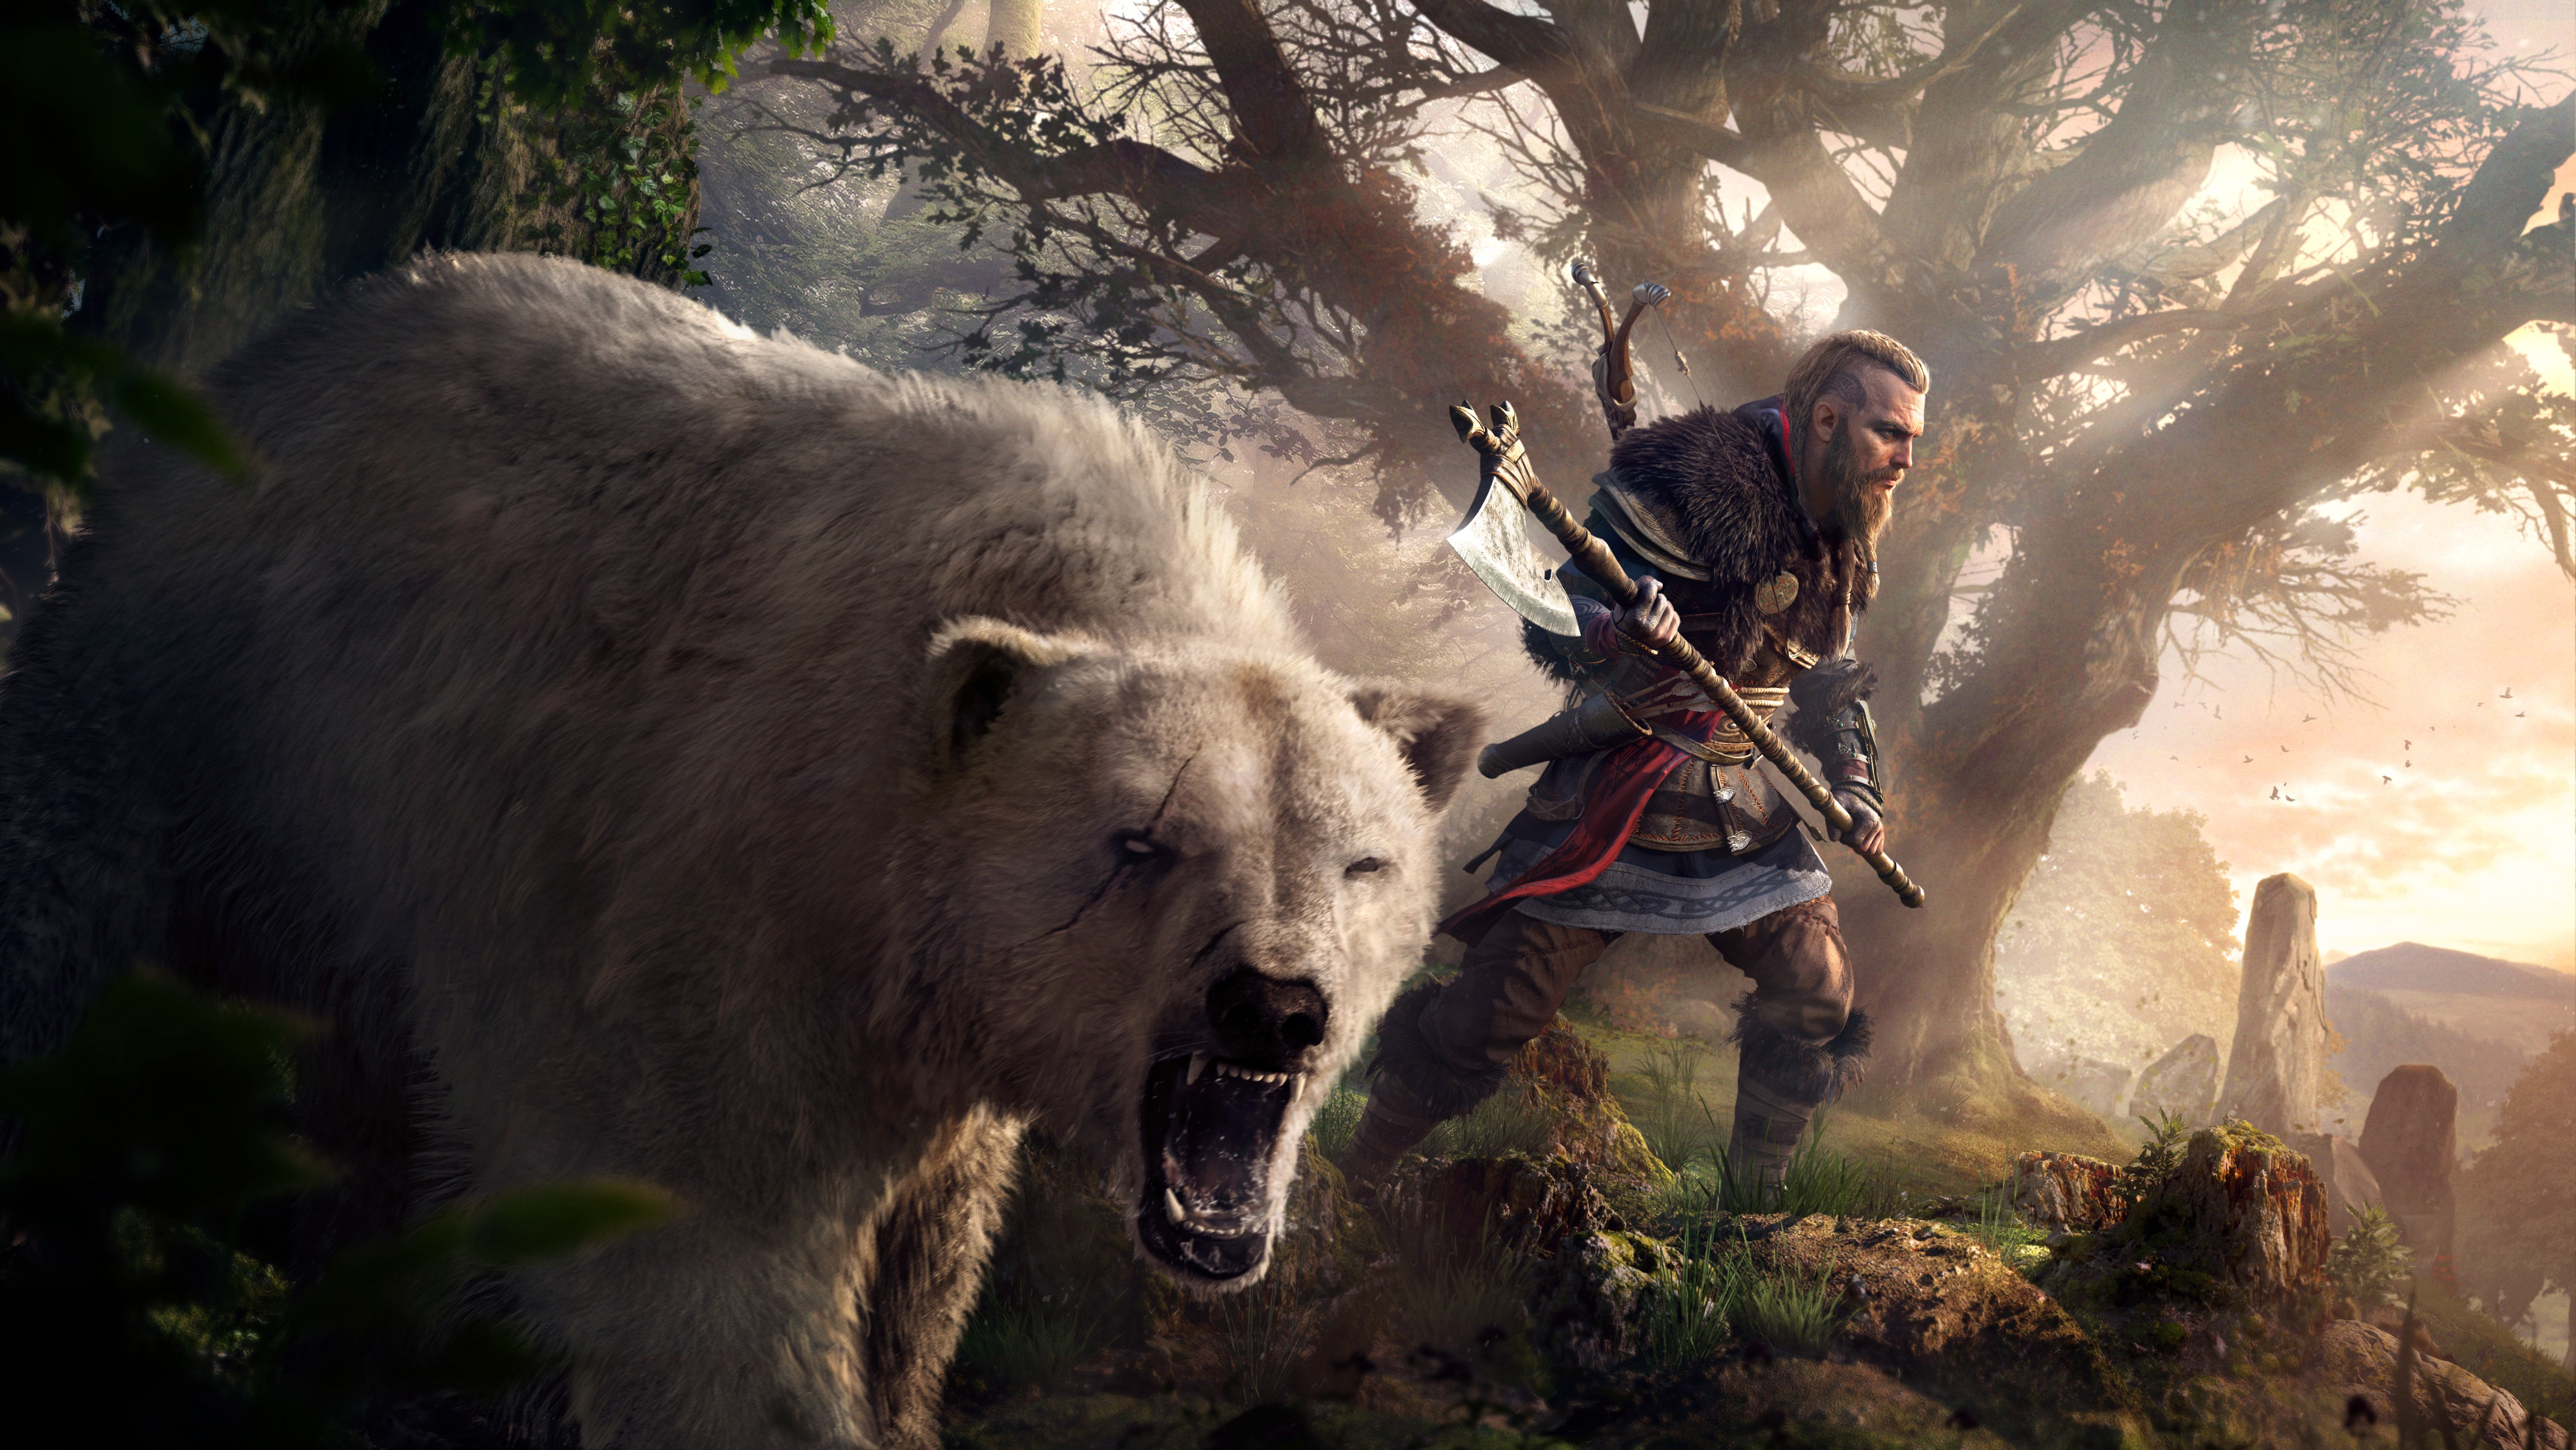 General 5329x3000 Assassin's Creed: Valhalla viking video games video game art digital art Axe bears